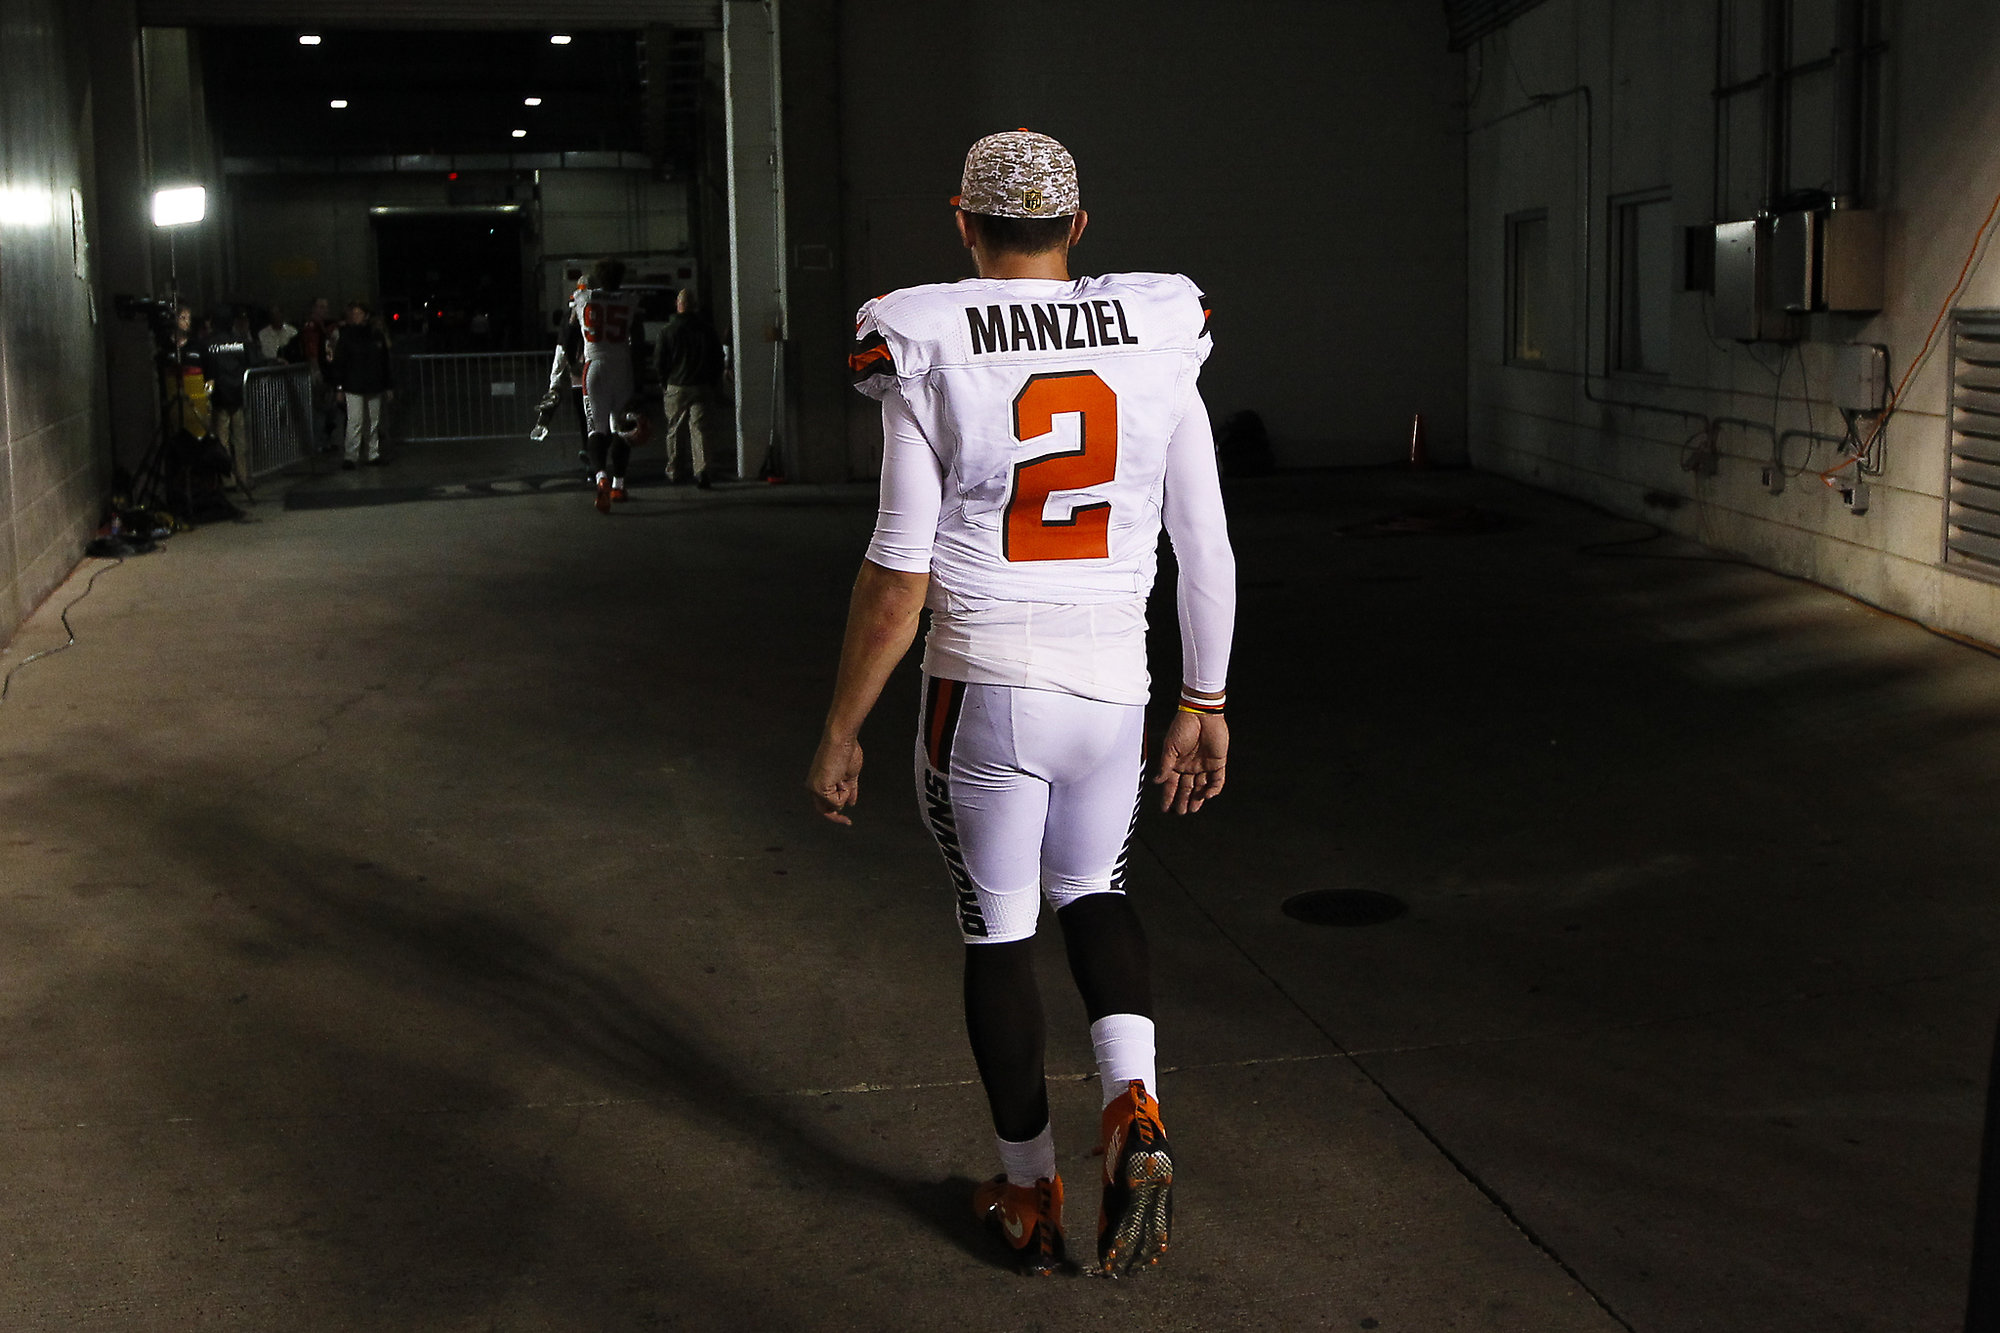 johnny manziel pushing for falcons vs patriots in super bowl 51 2017 images